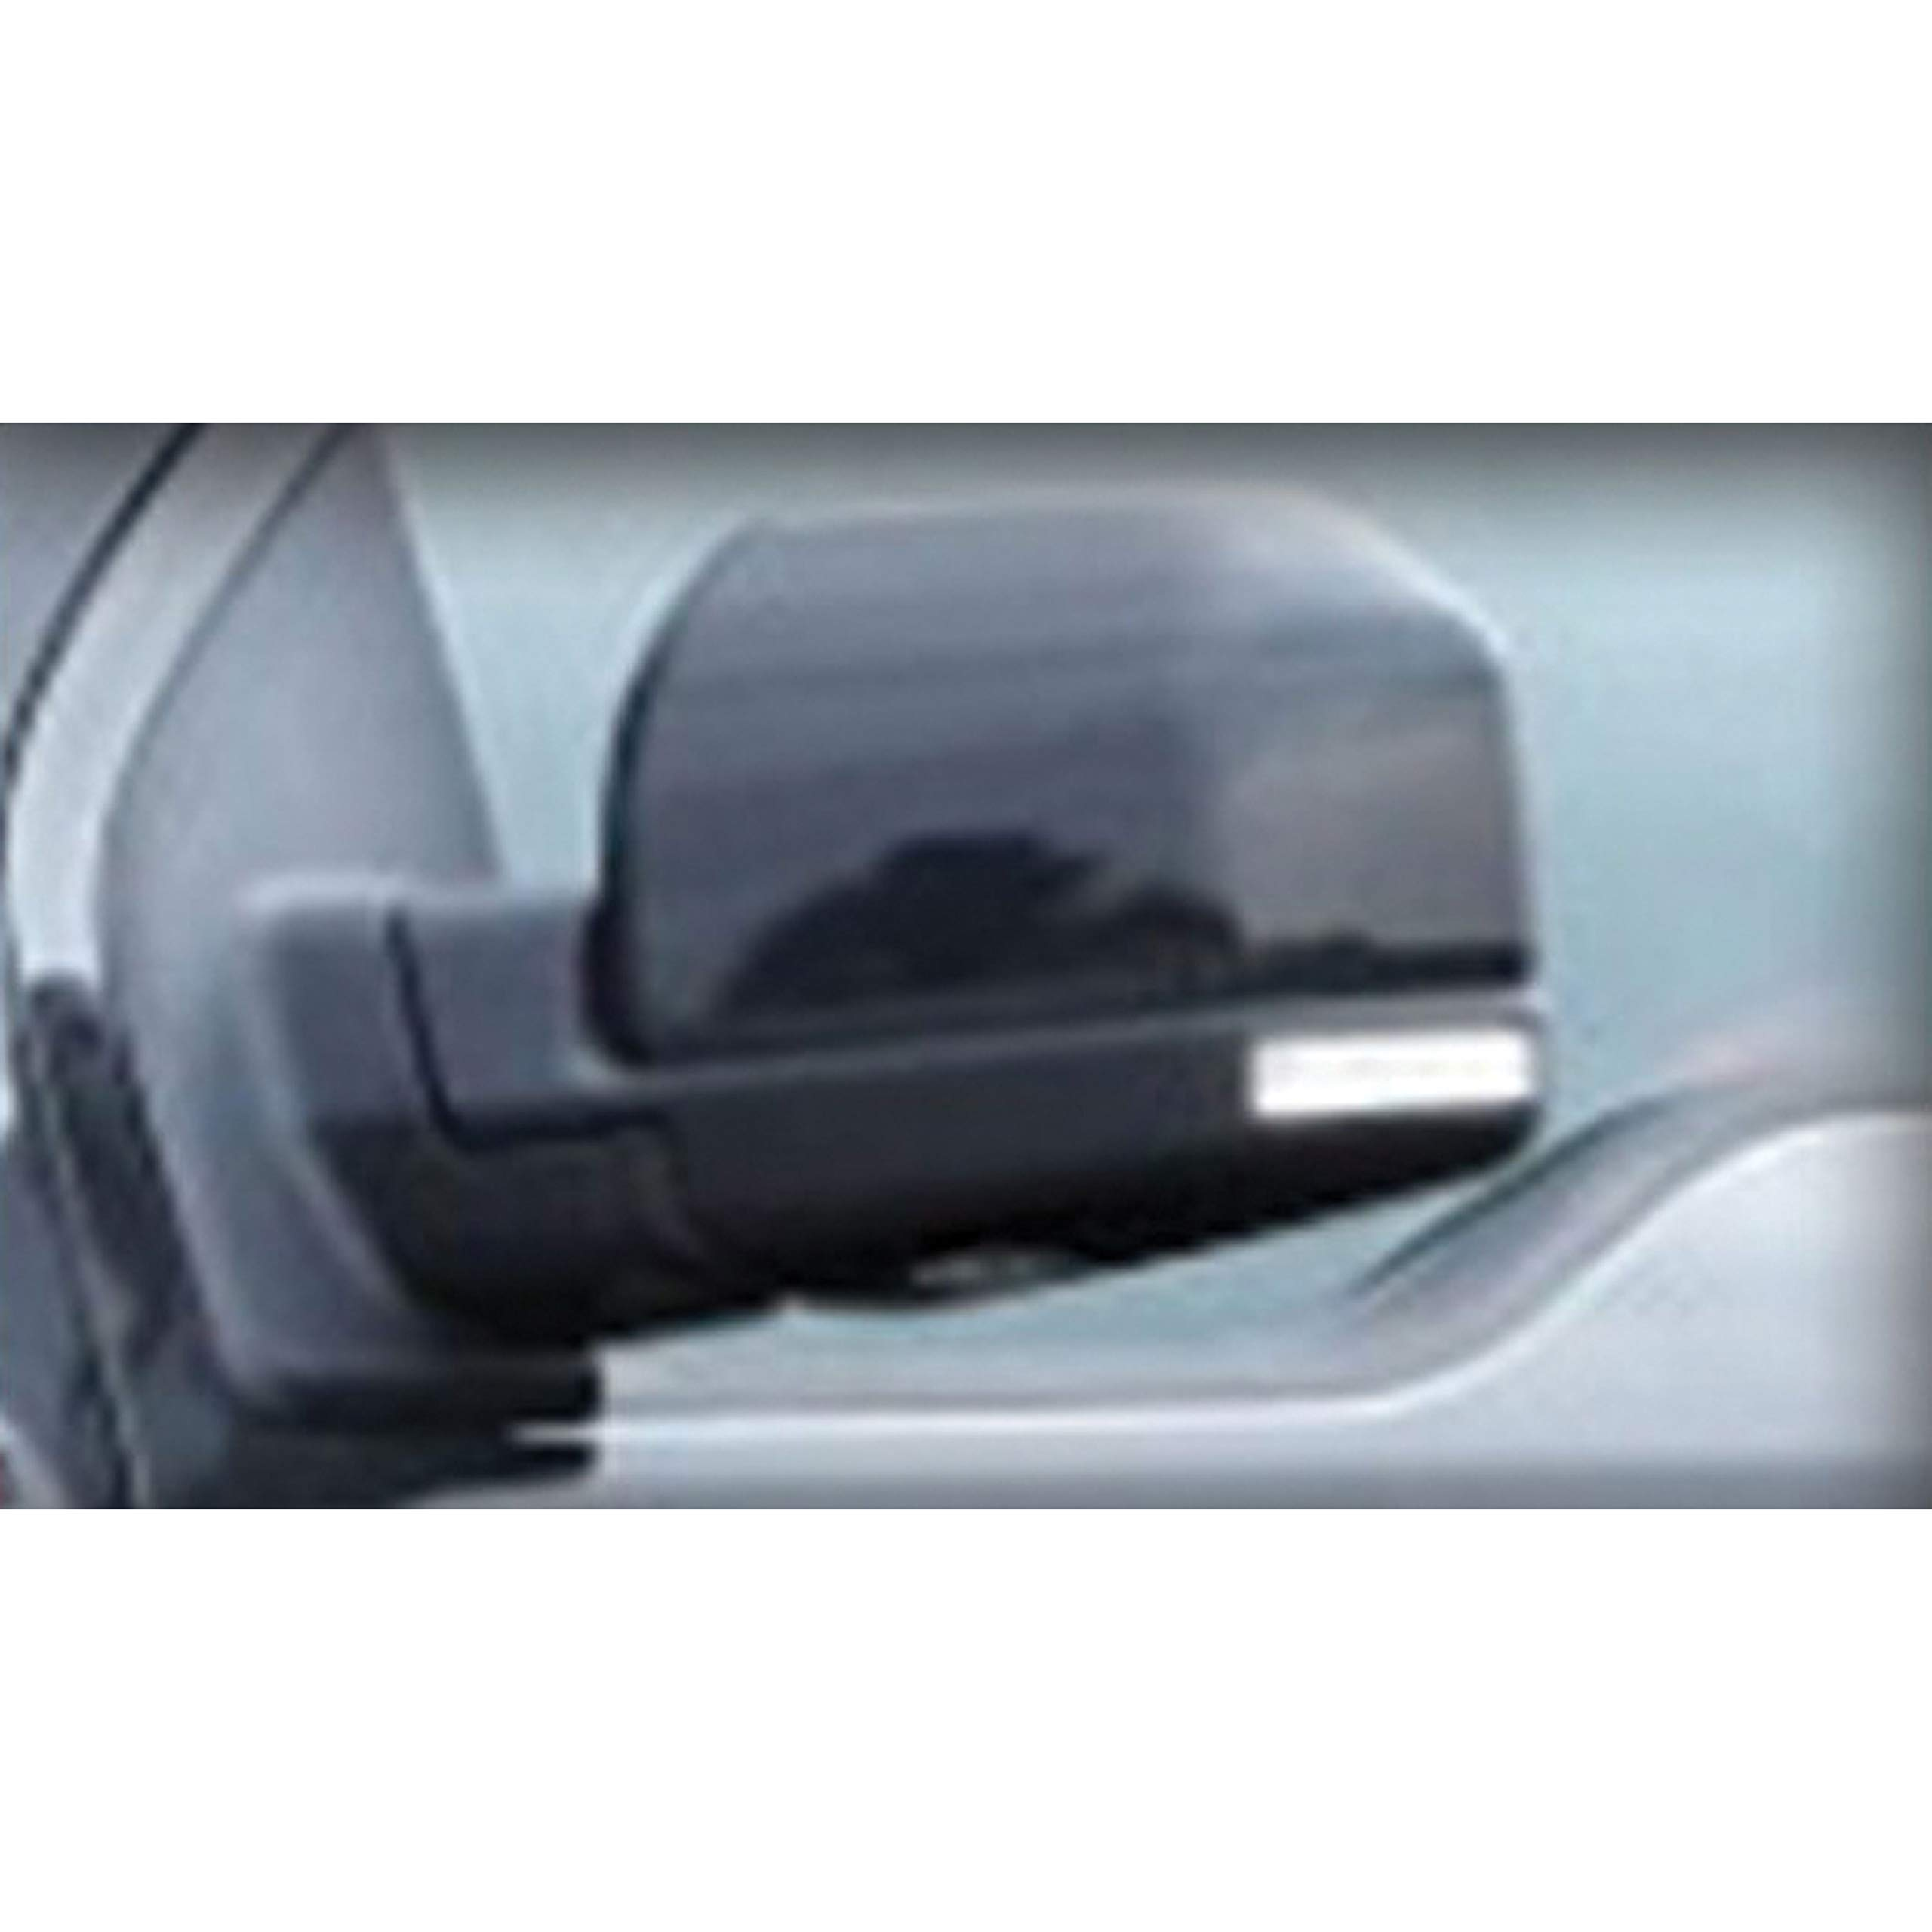 CIPA Black USA 11550 Tow Mirror 15-19 Ford, 2 Pack by CIPA